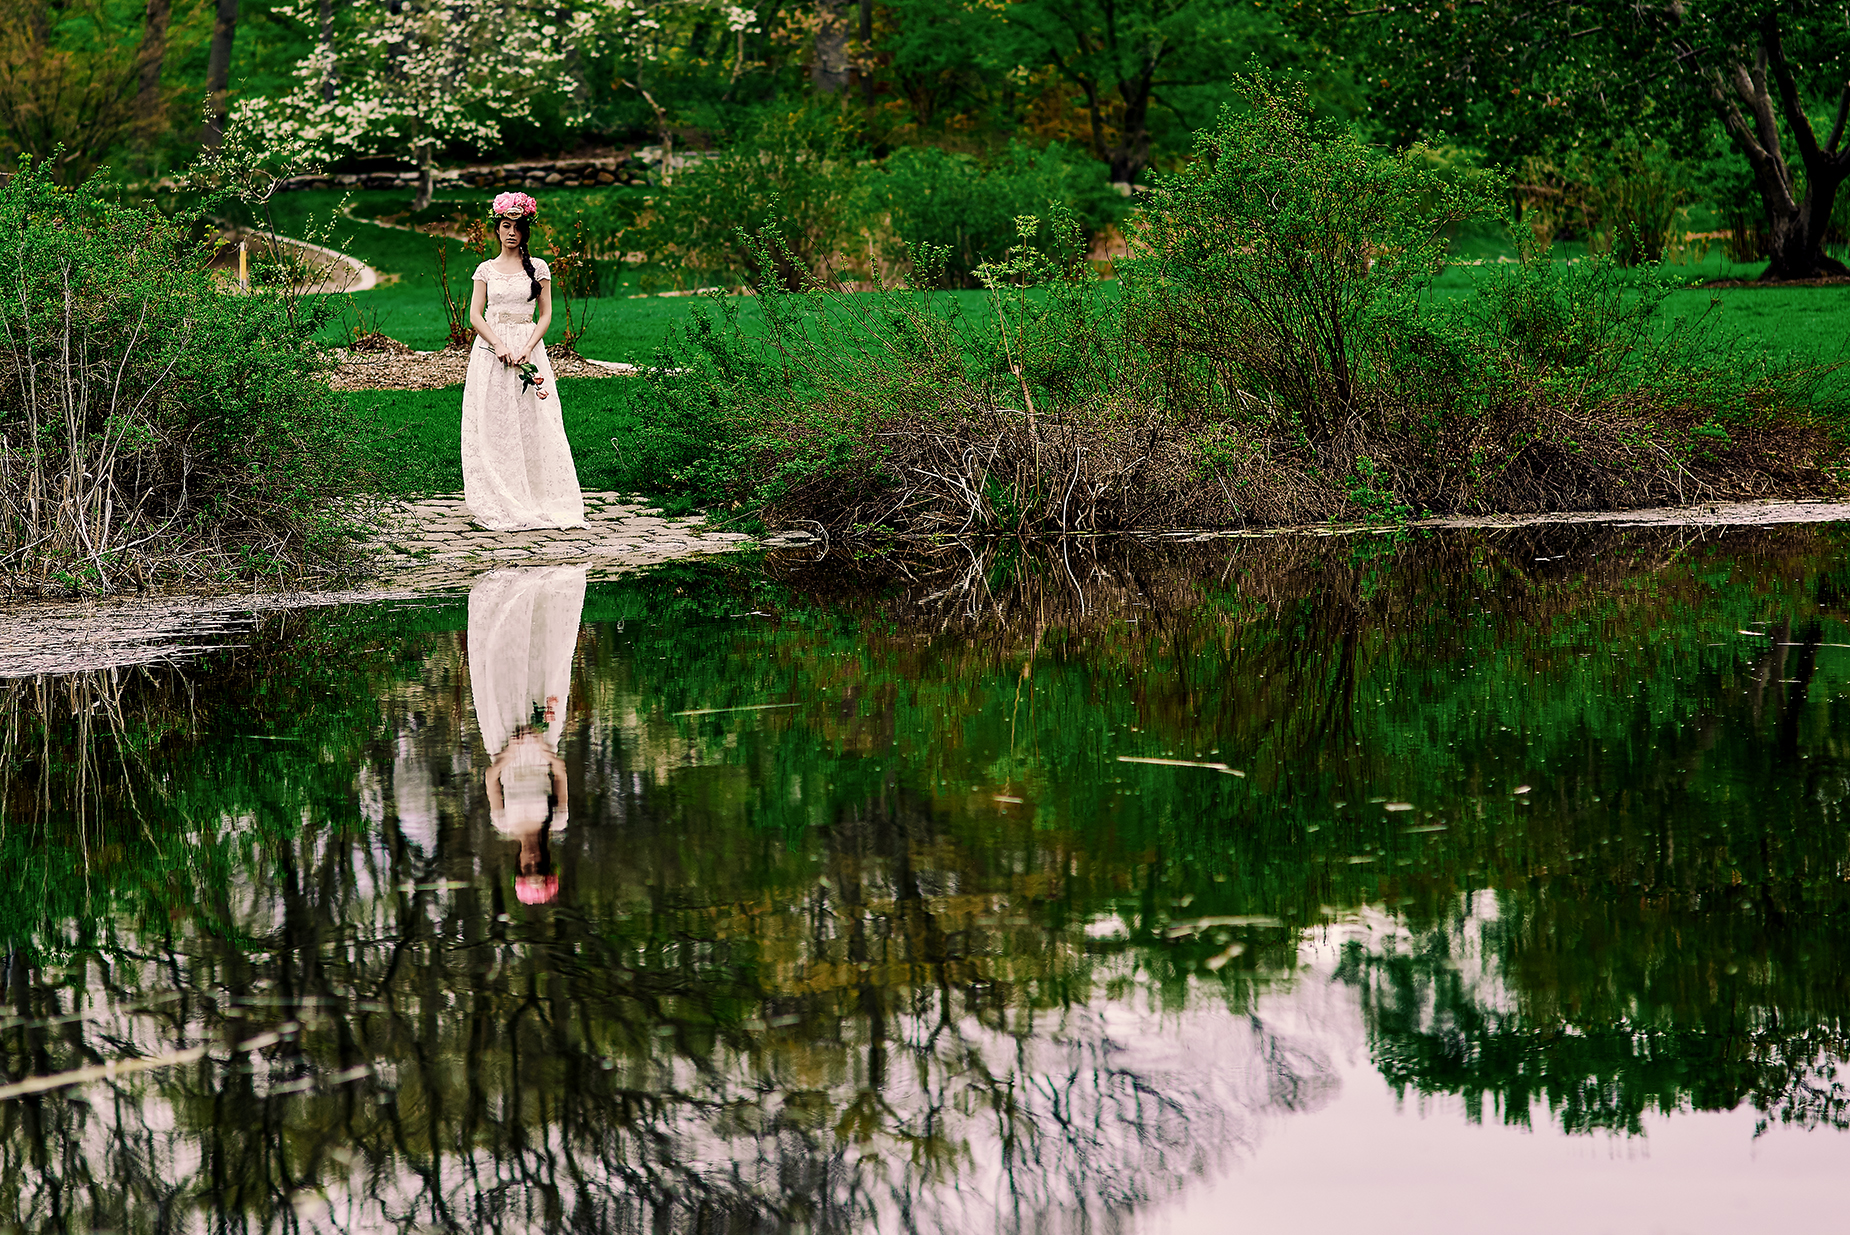 bridal-photography-in-park-wedding-inspo.jpg